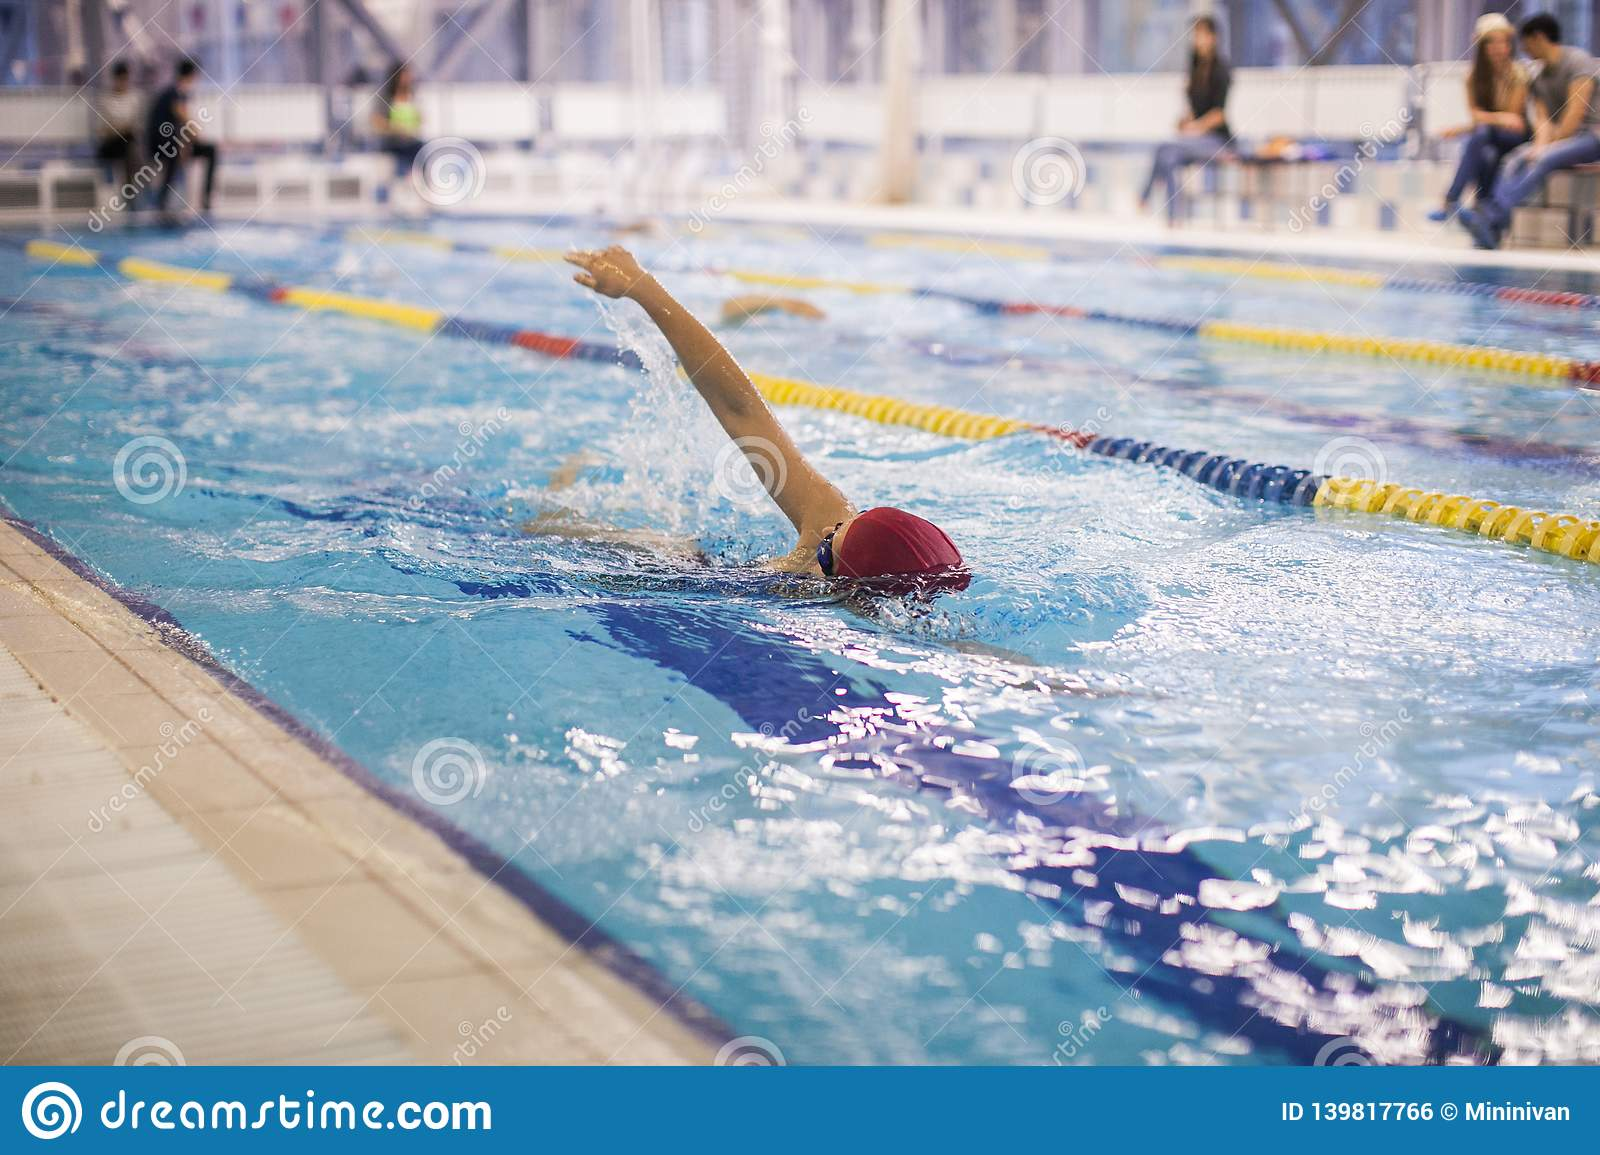 A Swimmer Swimming The Front Crawl In A Pool